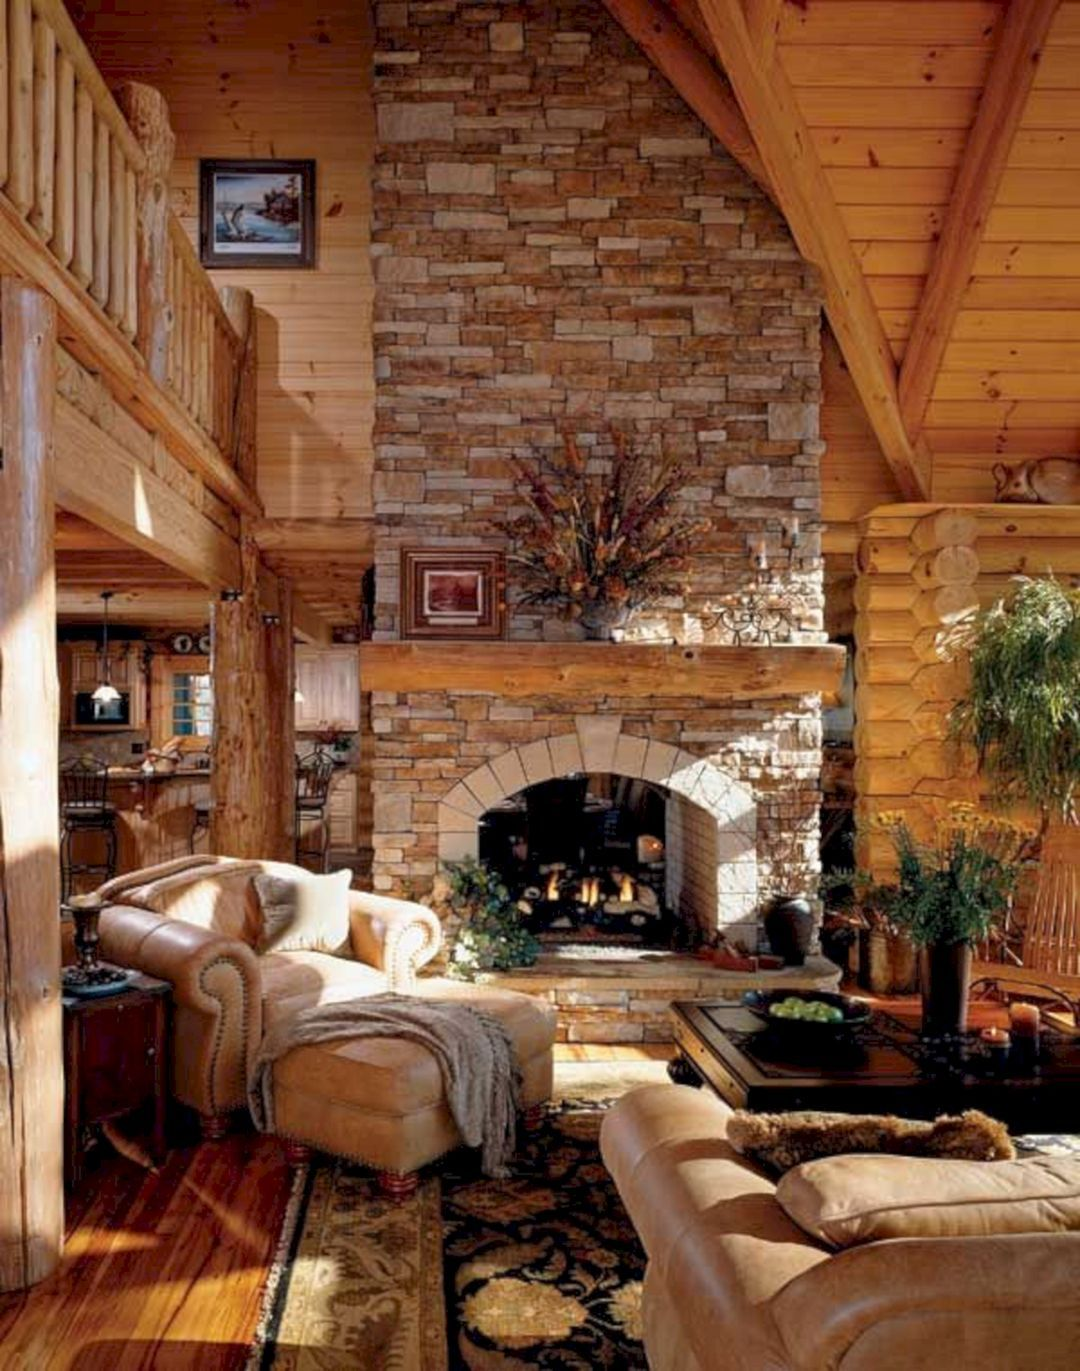 log cabin living rooms ideas wall paint colors for room 2016 49 superb cozy and rustic style https freshouz